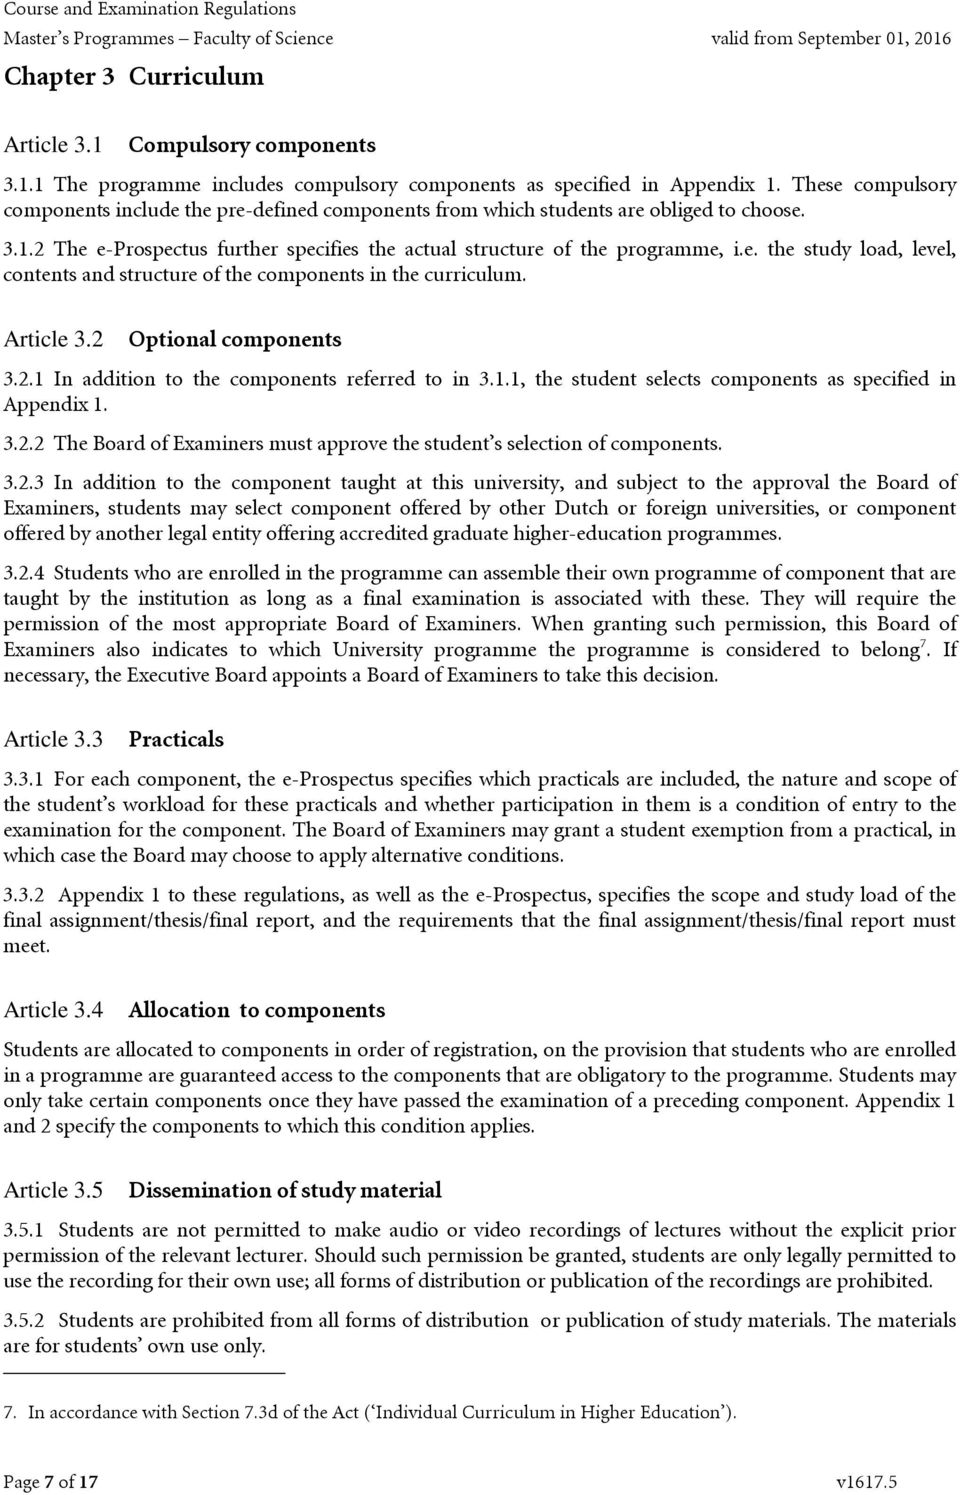 Article 3.2 Optional components 3.2.1 In addition to the components referred to in 3.1.1, the student selects components as specified in Appendix 1. 3.2.2 The Board of Examiners must approve the student s selection of components.